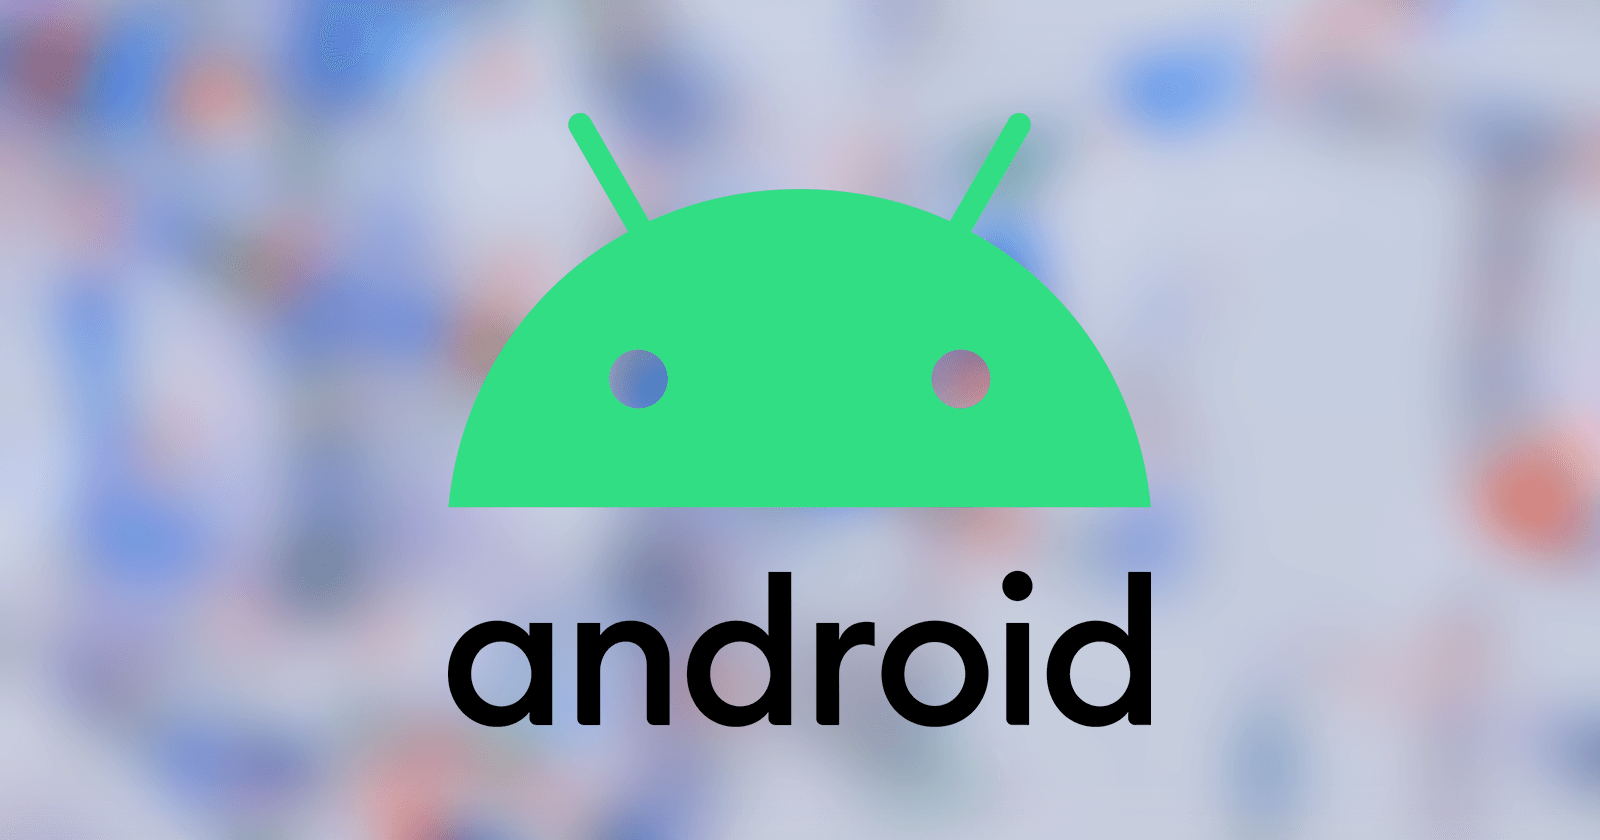 android logo 281220